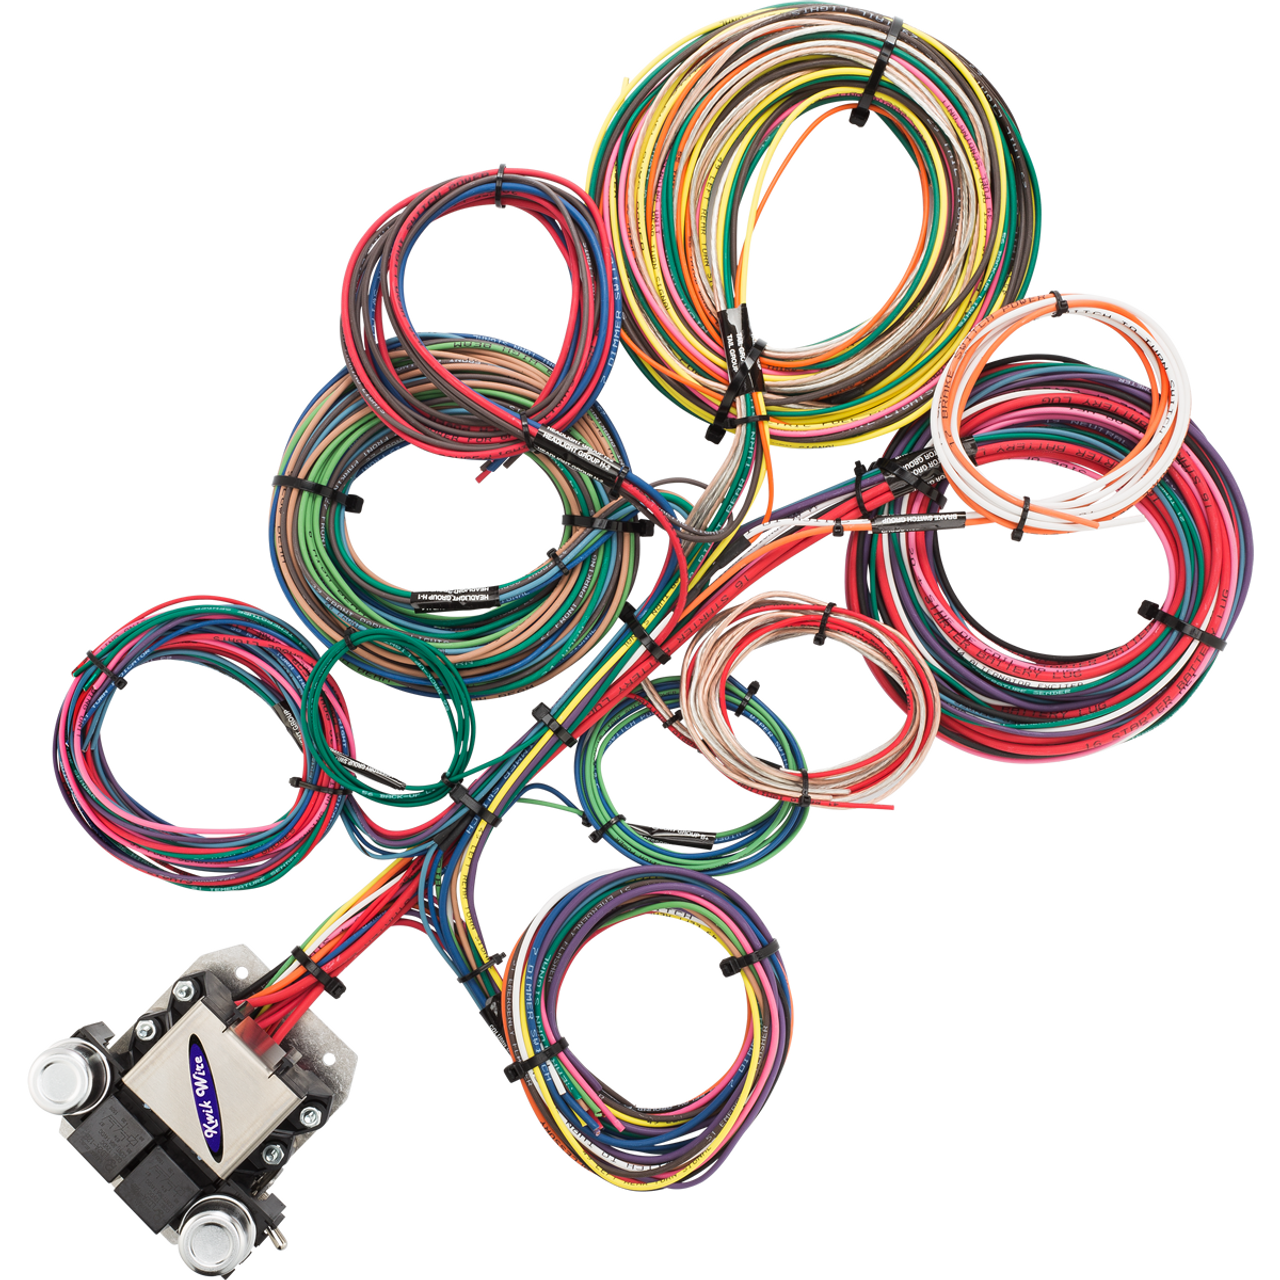 8 circuit wire harness rh kwikwire com rebel wire 8 circuit wiring harness 8 circuit wiring harness with switches